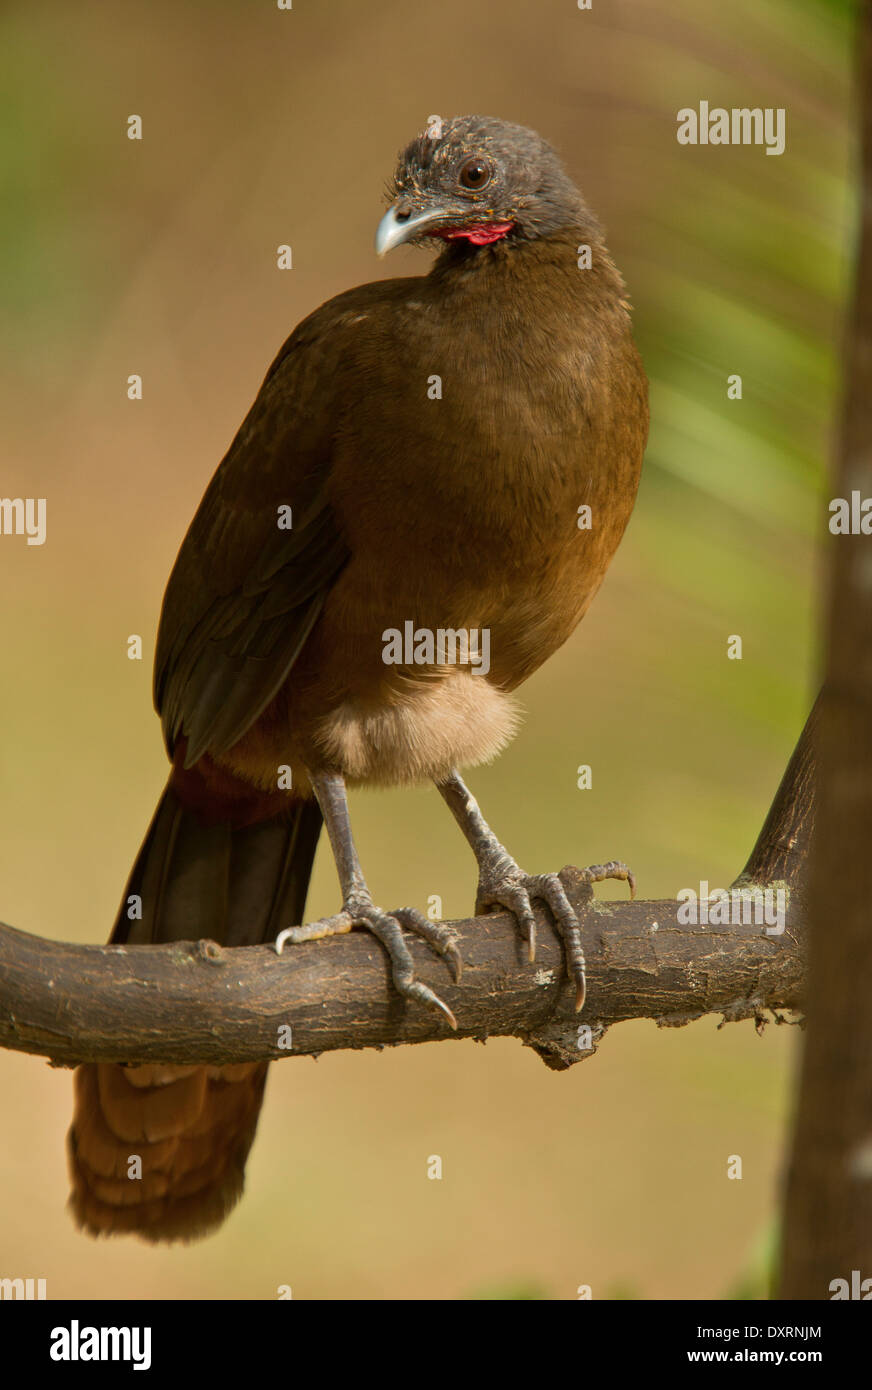 Rufous-vented Chachalaca, Ortalis ruficauda ruficauda perched on tree branch. Tobago. - Stock Image